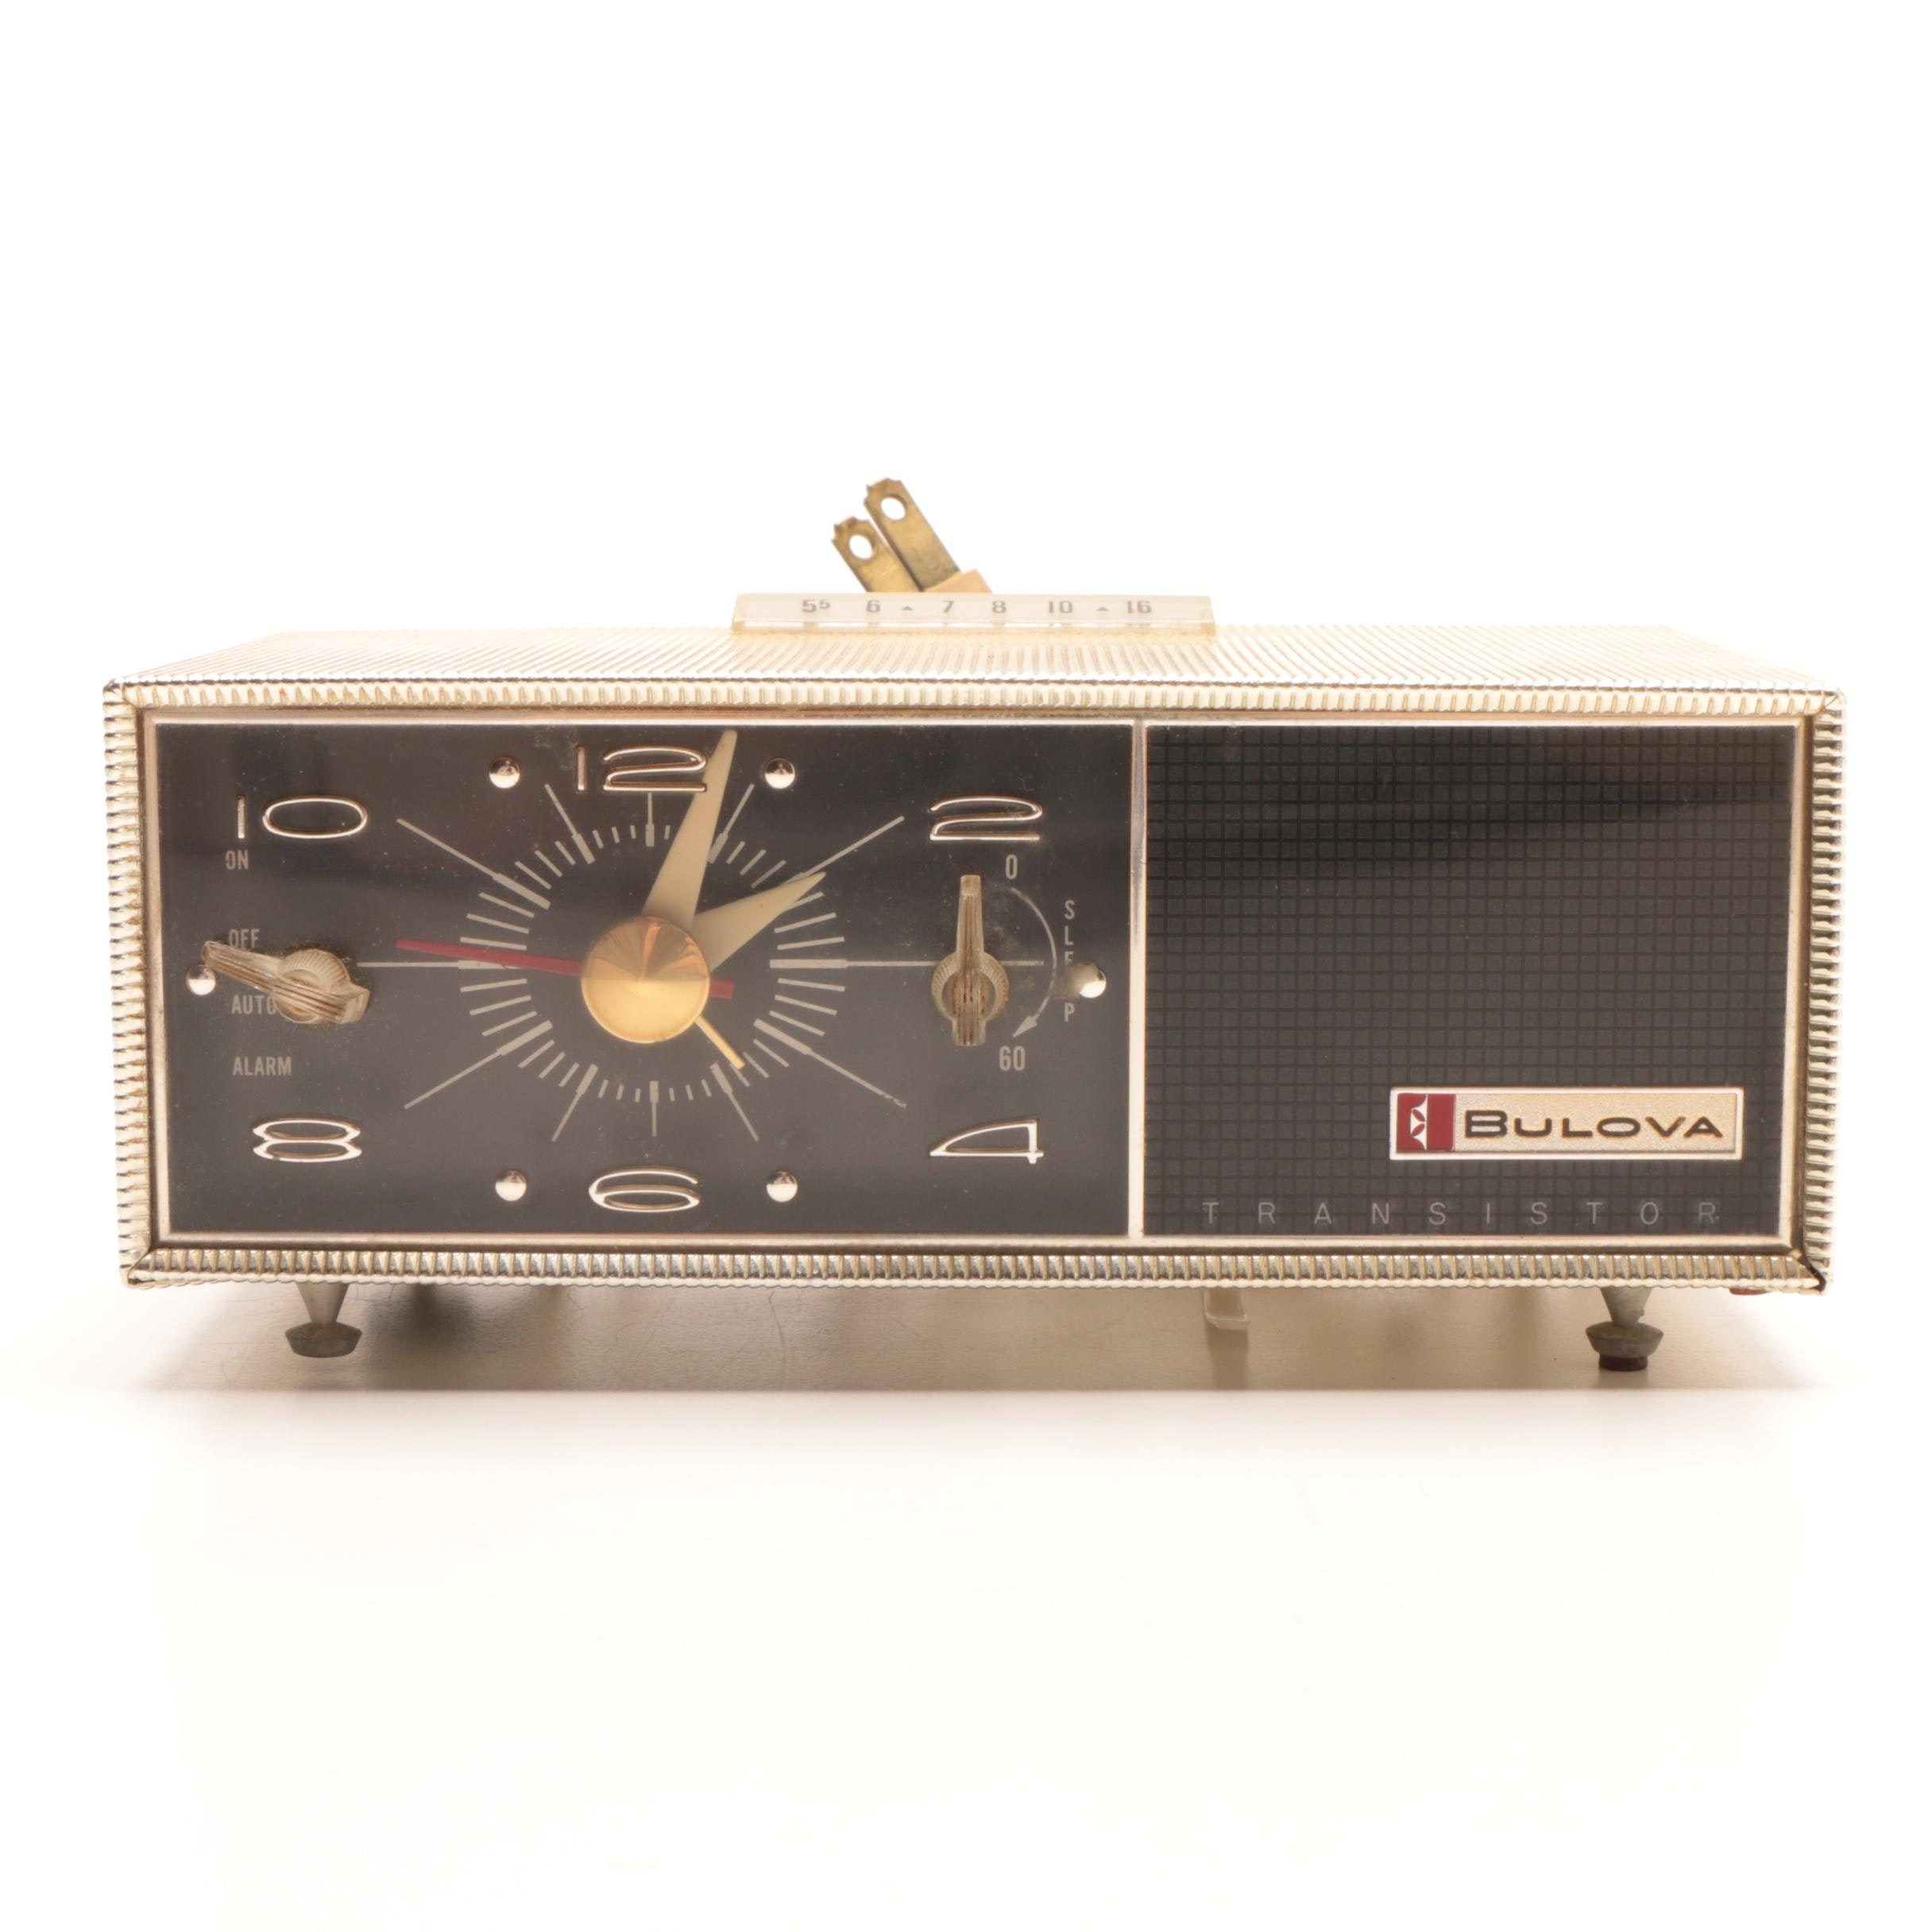 1962  Bulova Electric Alarm Clock Radio